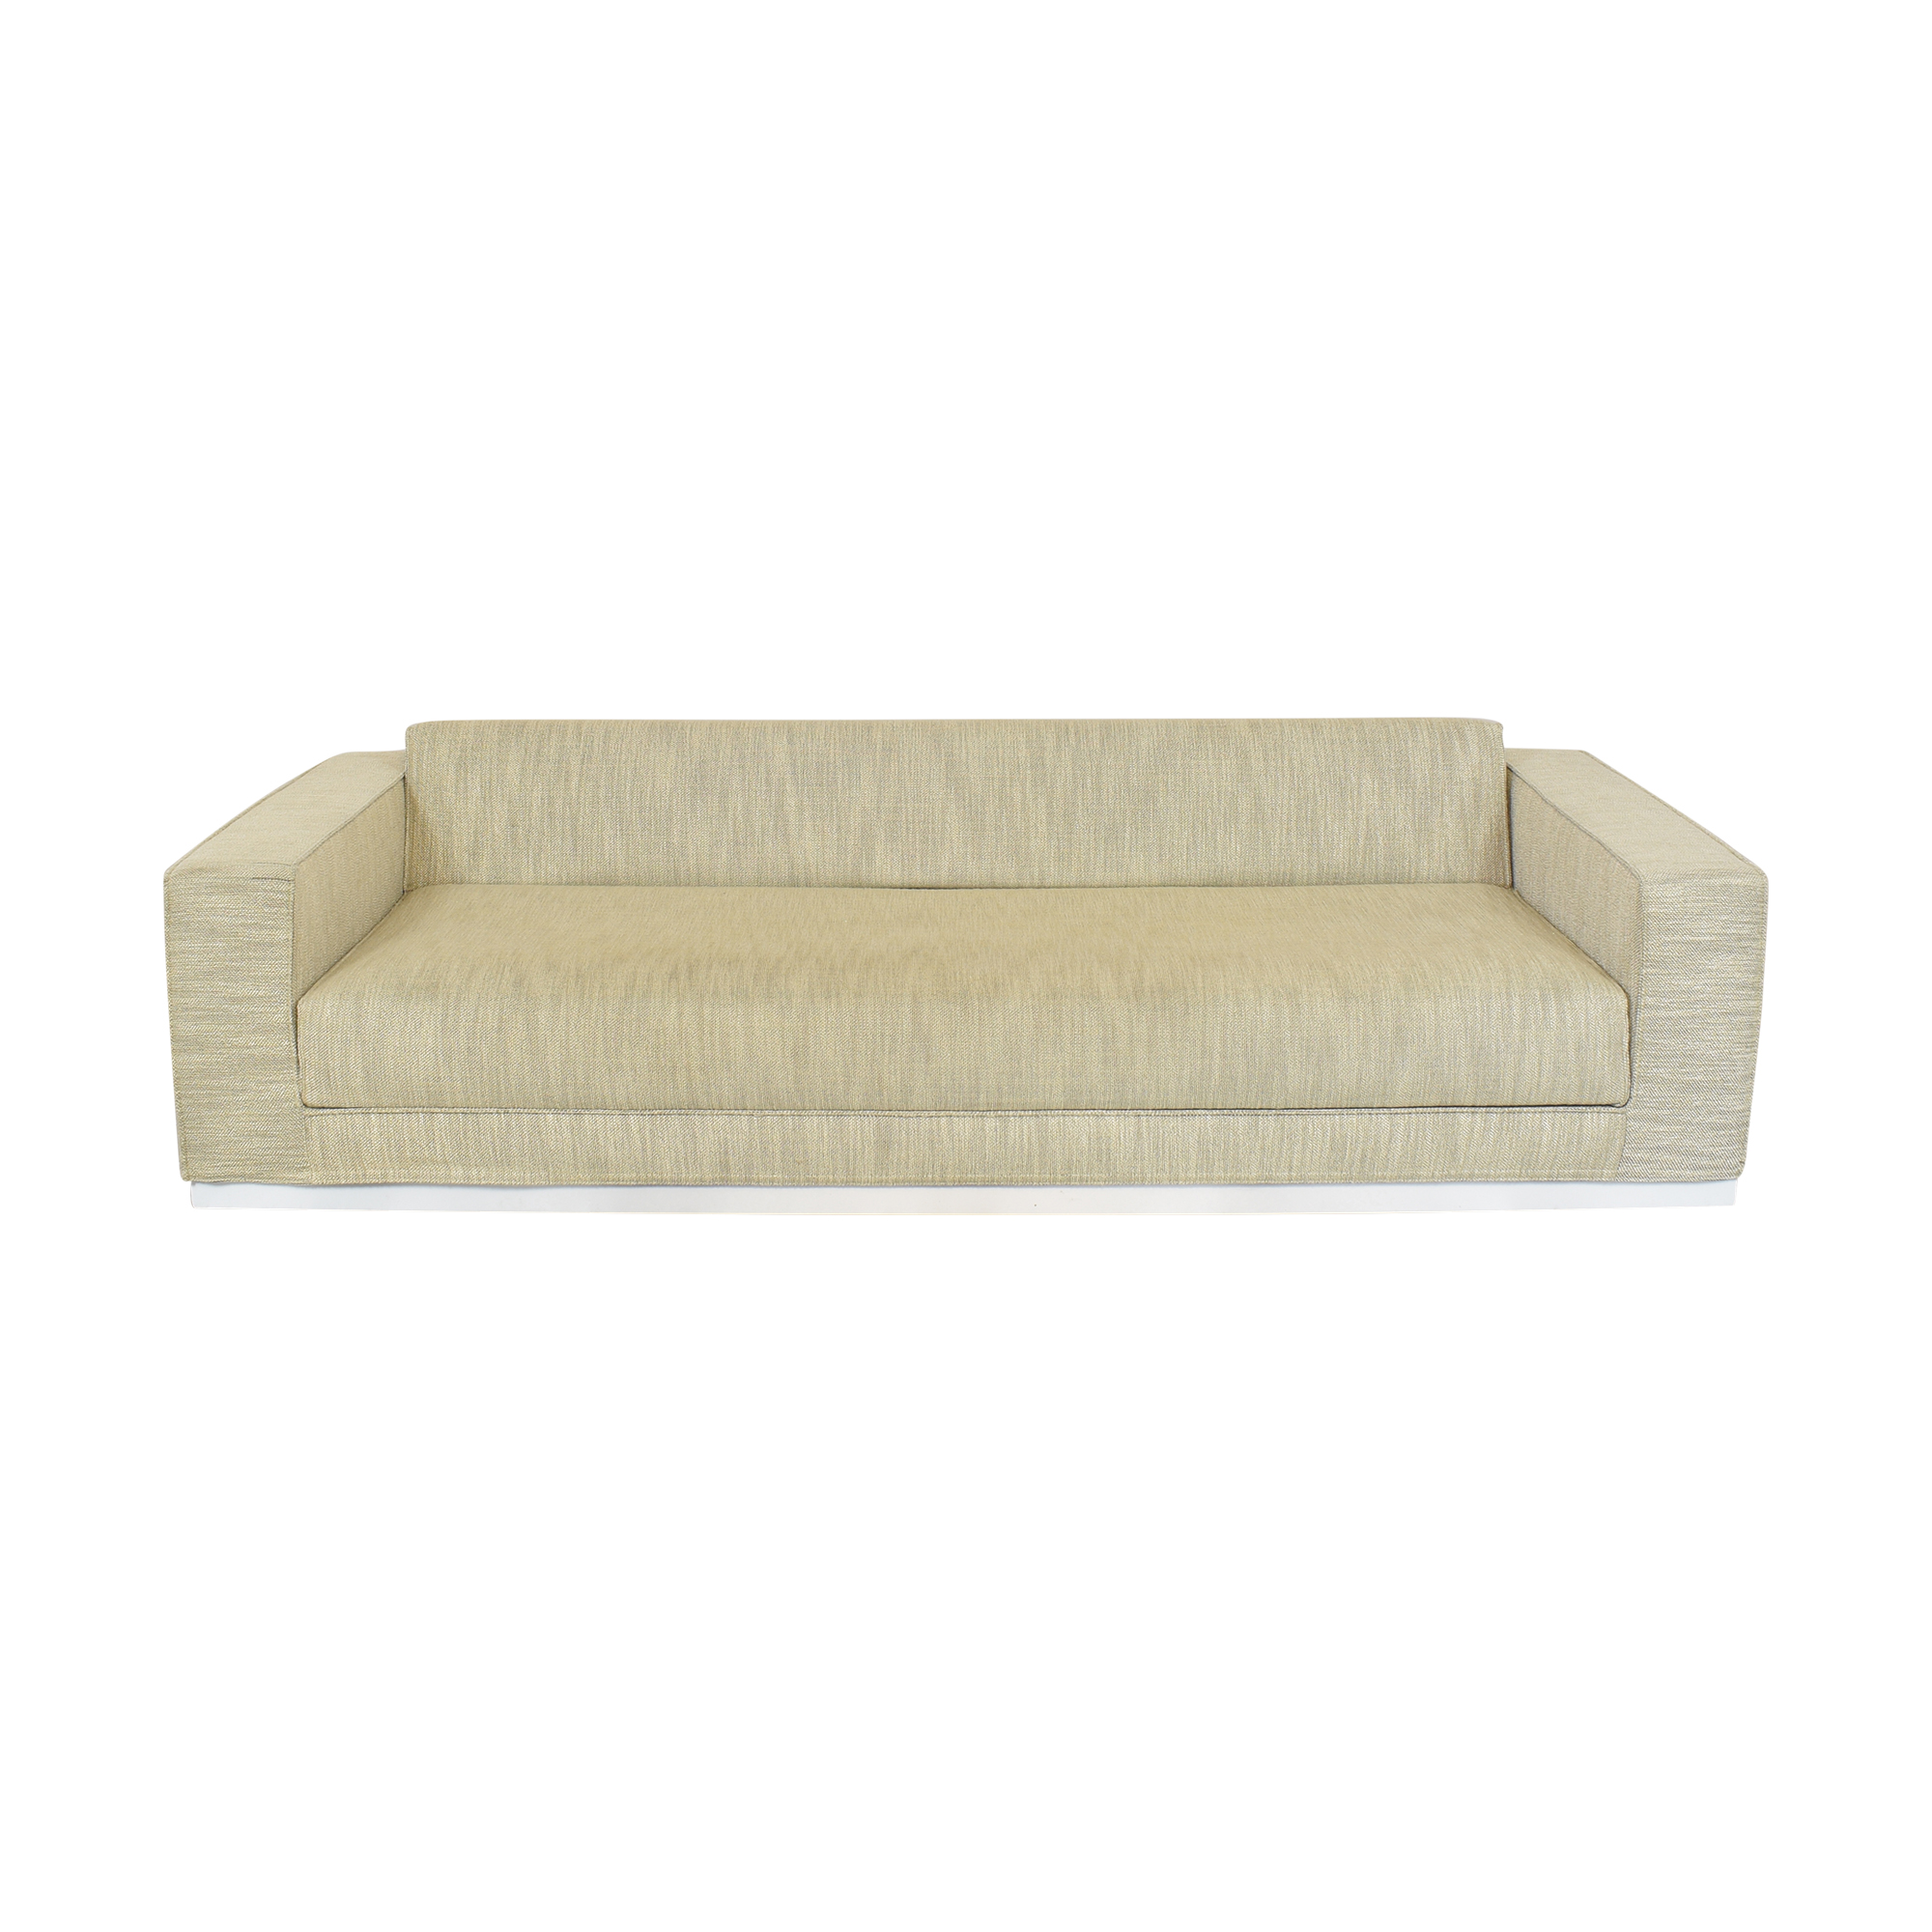 shop Design Within Reach Design Within Reach Havana Sleeper Sofa online